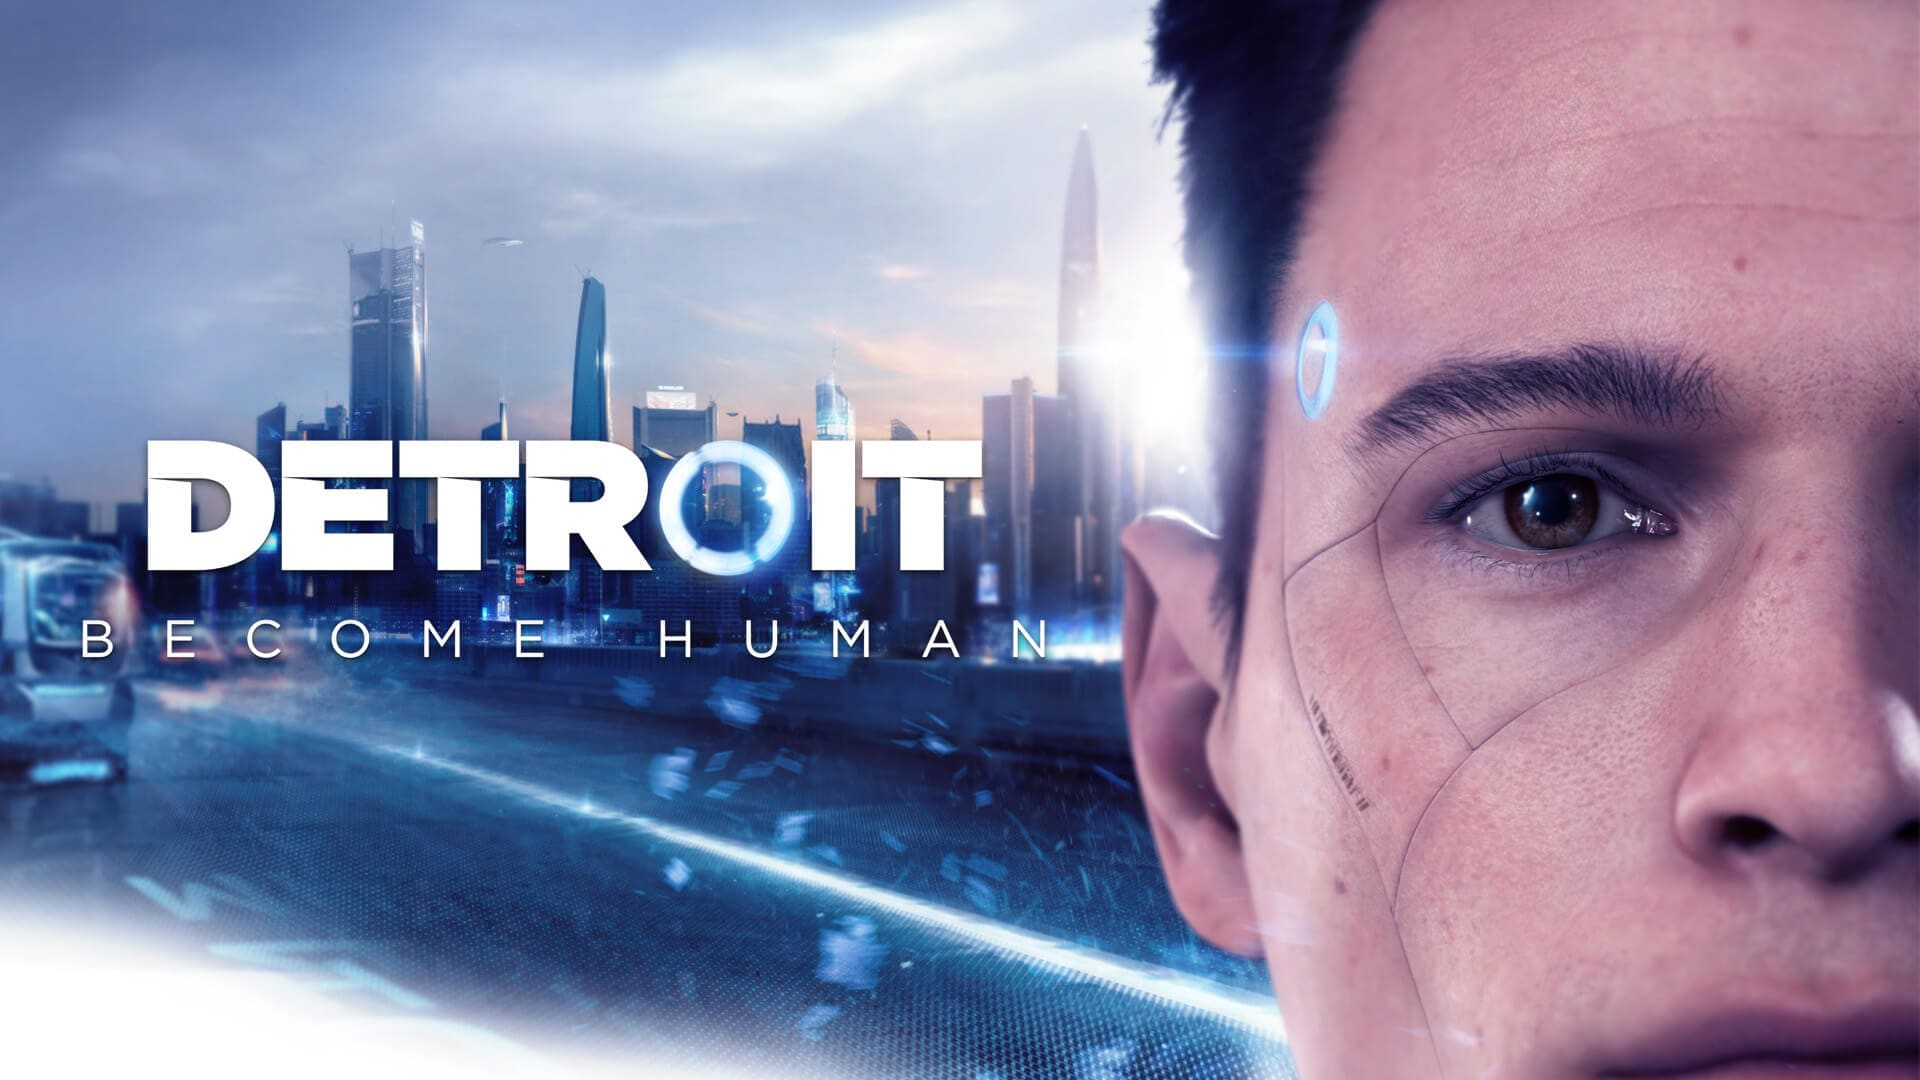 Diesel_productv2_detroit-become-human_home_Detroit_PC_Carousel-1920x1080-6e90610a5d314ce0c12860770cc38c1b23213000